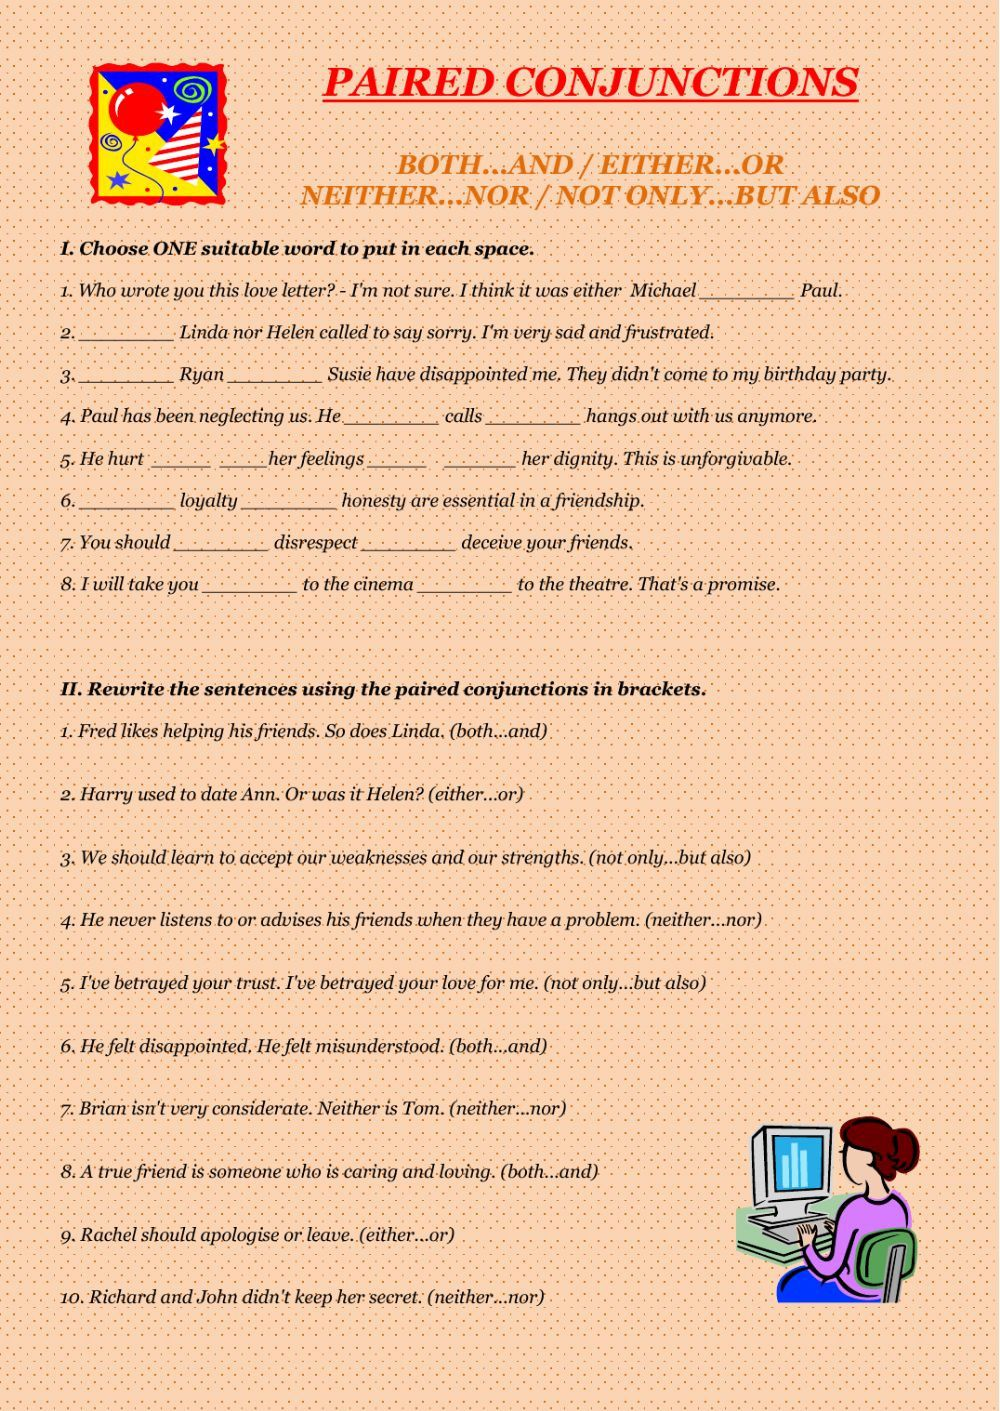 medium resolution of Correlative Conjunctions Worksheet 5th Grade Paired Conjunctions  Conjunctions Worksheet   Conjunctions worksheet